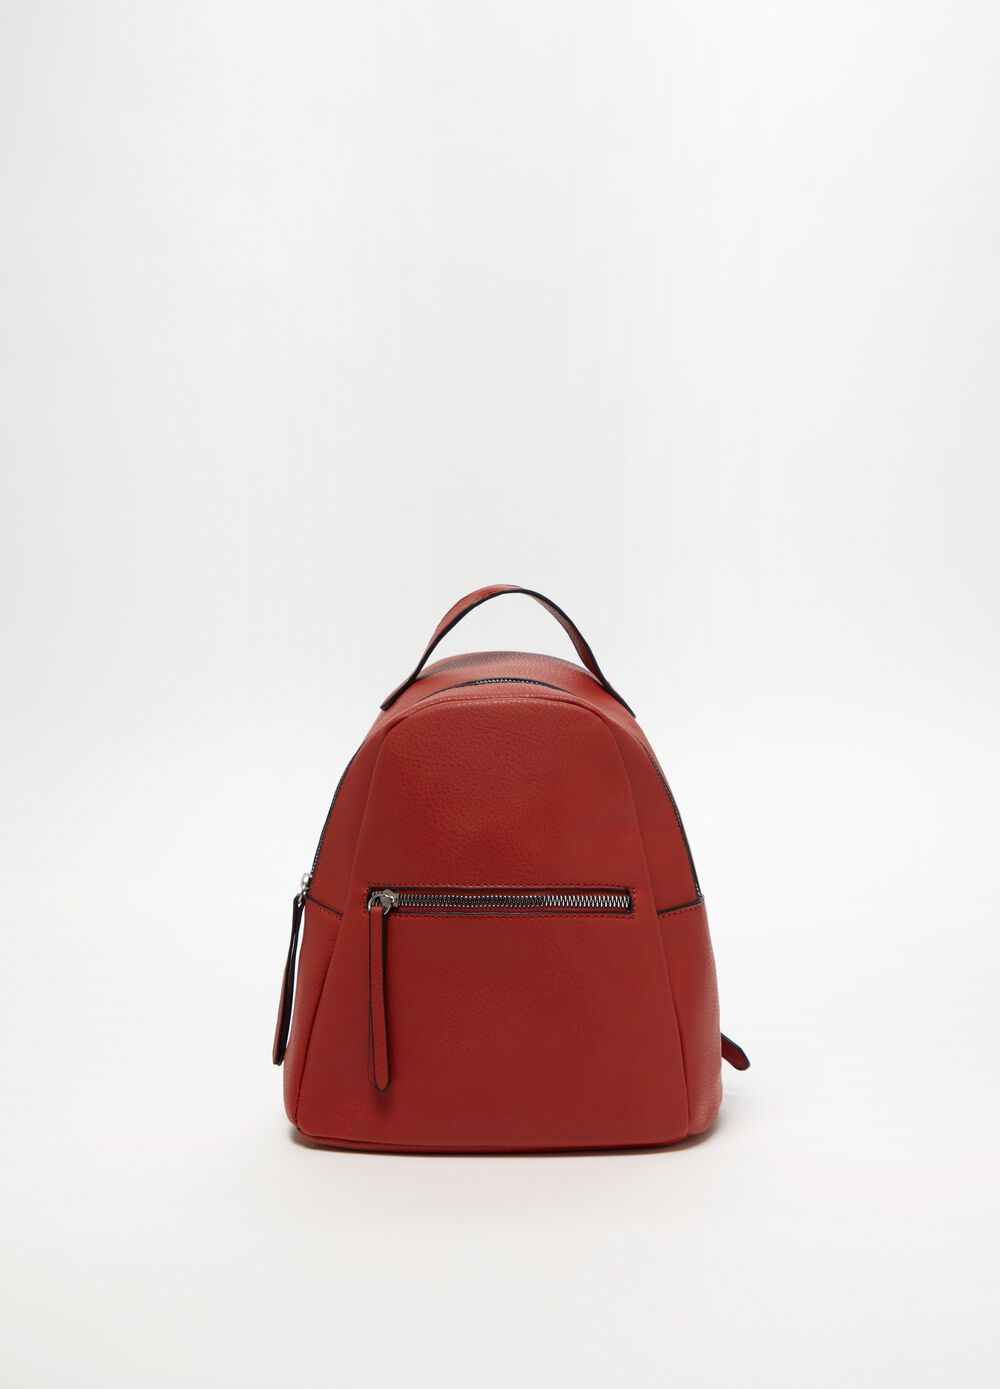 Soft textured leather-look backpack